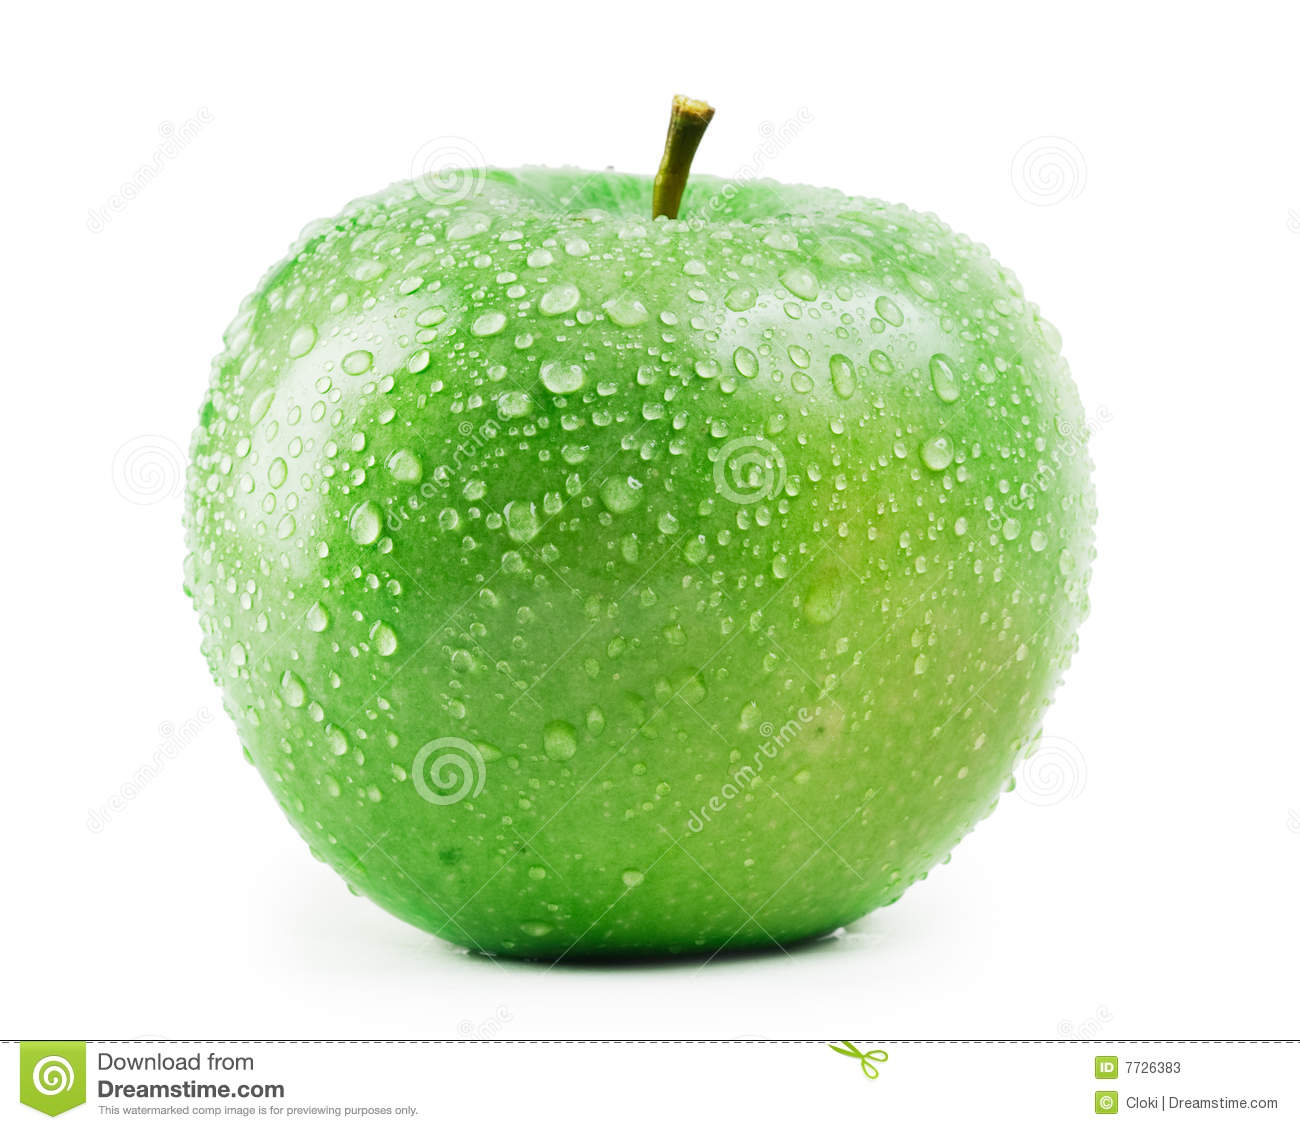 Falling Water Wallpaper Free Download Green Apple With Water Drops Stock Image Image Of